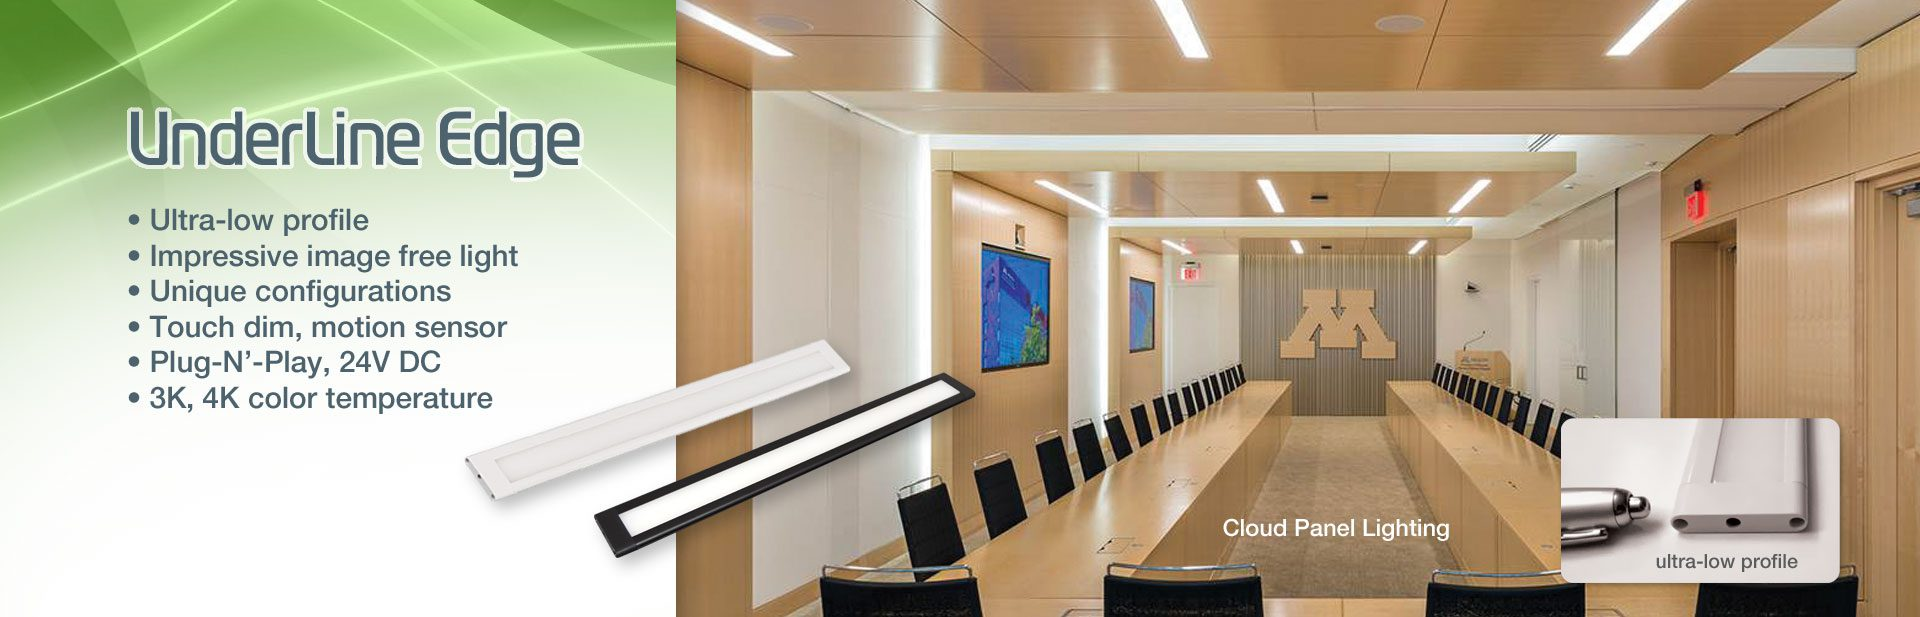 UnderLine Edge - Impressive image free light from Solid State Luminaires